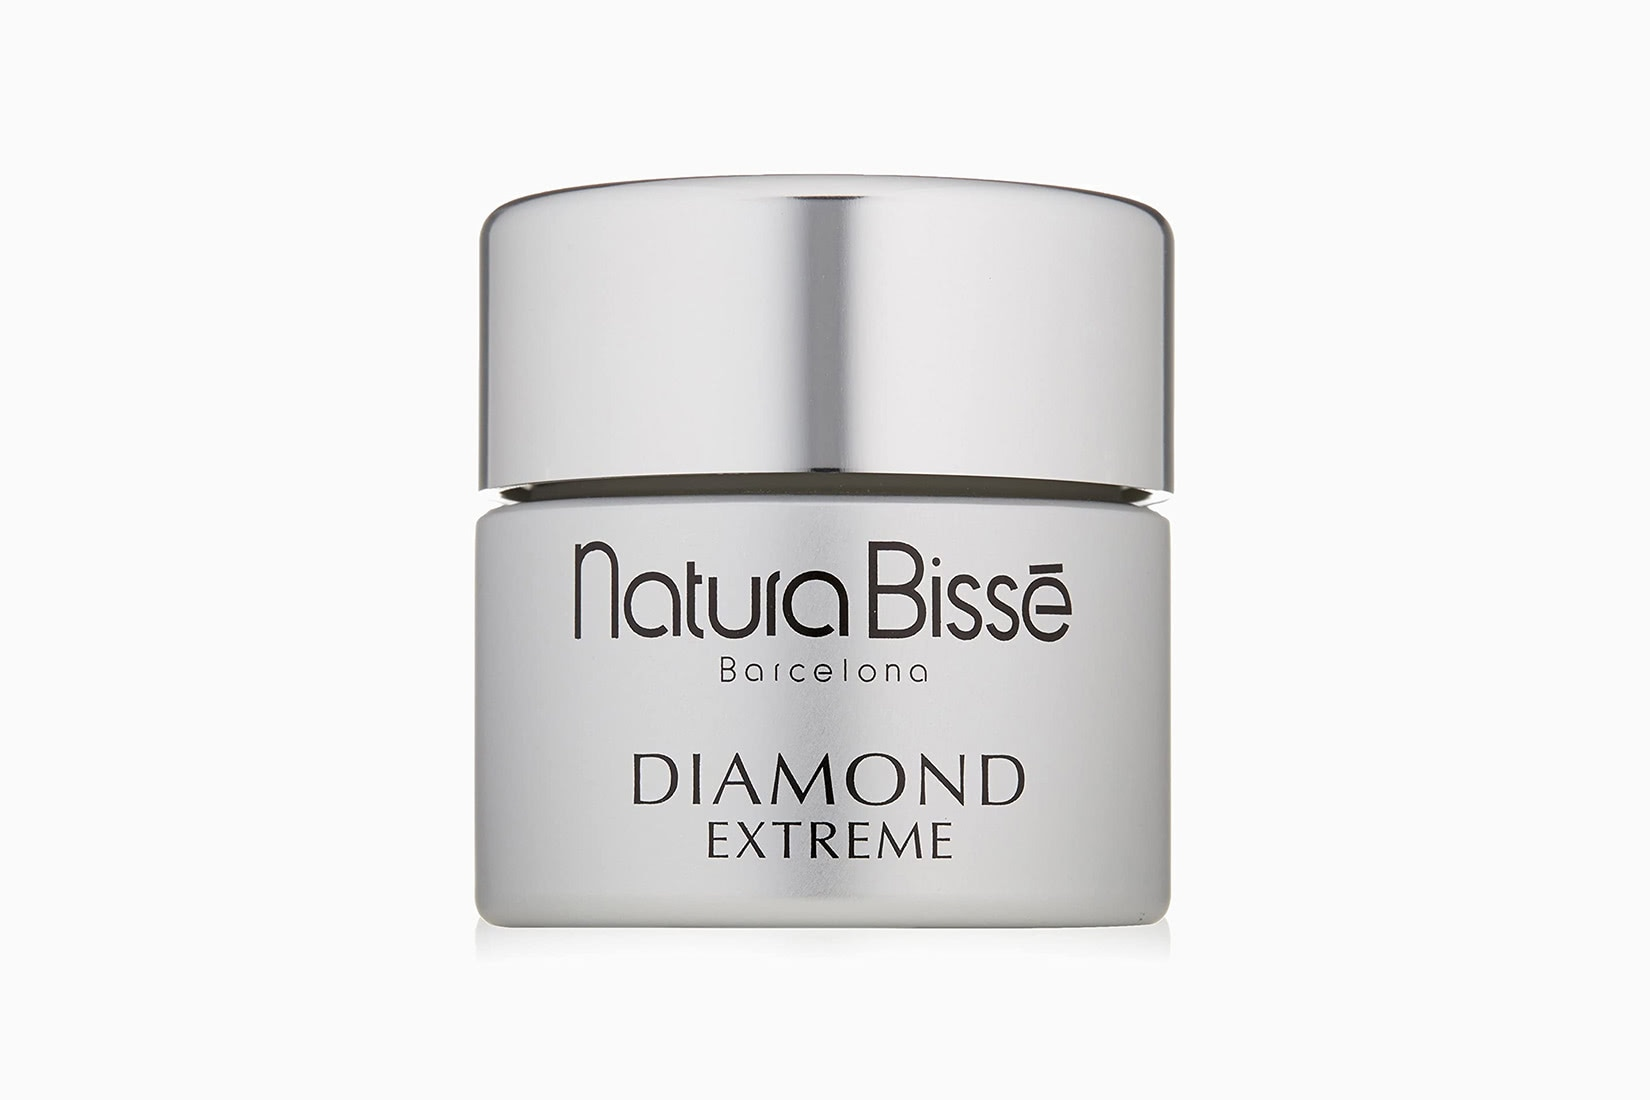 best natural organic beauty skincare natura bisse diamond extreme - Luxe Digital